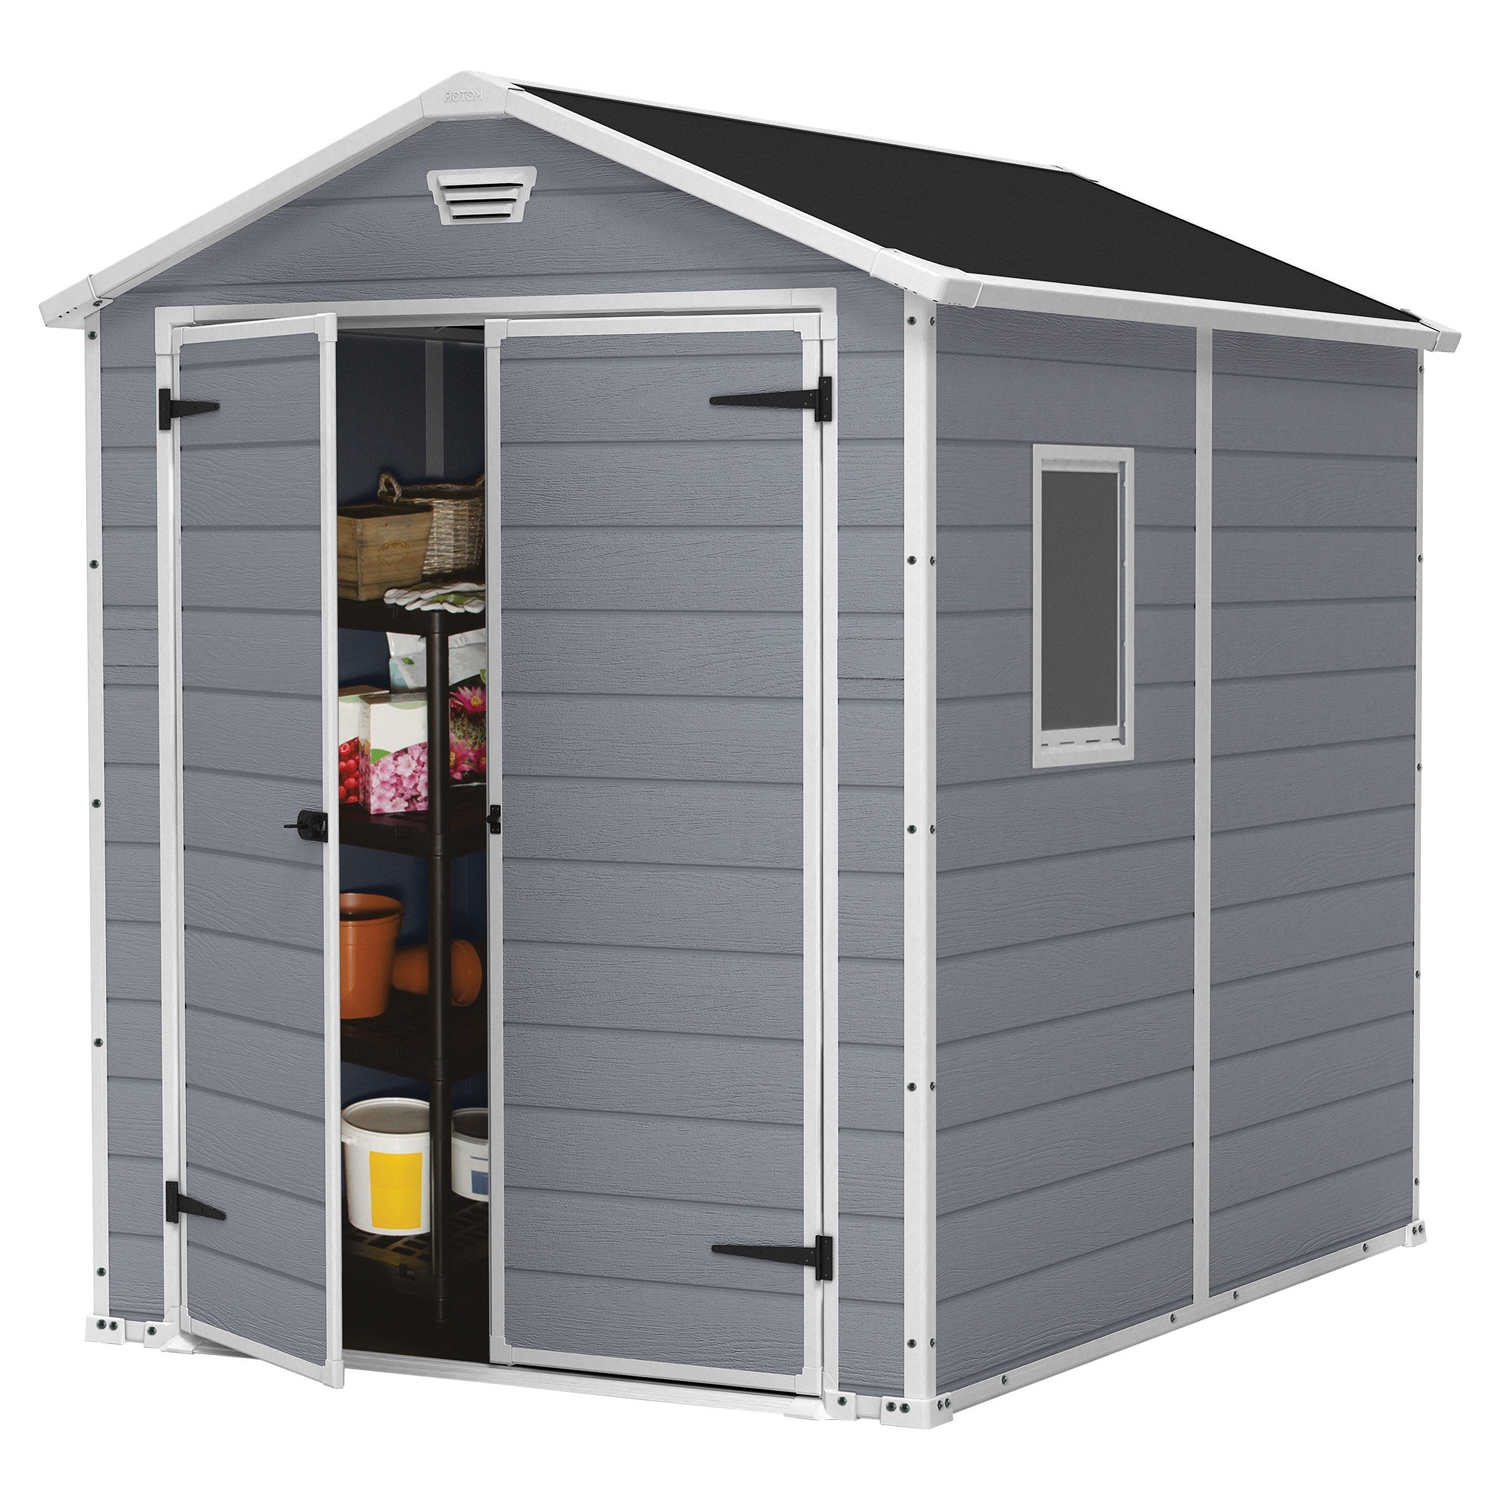 Steel Storage Sheds Outdoor 6 Ft X 8 Ft Storage Shed In Steel Reinforced Polypropylene